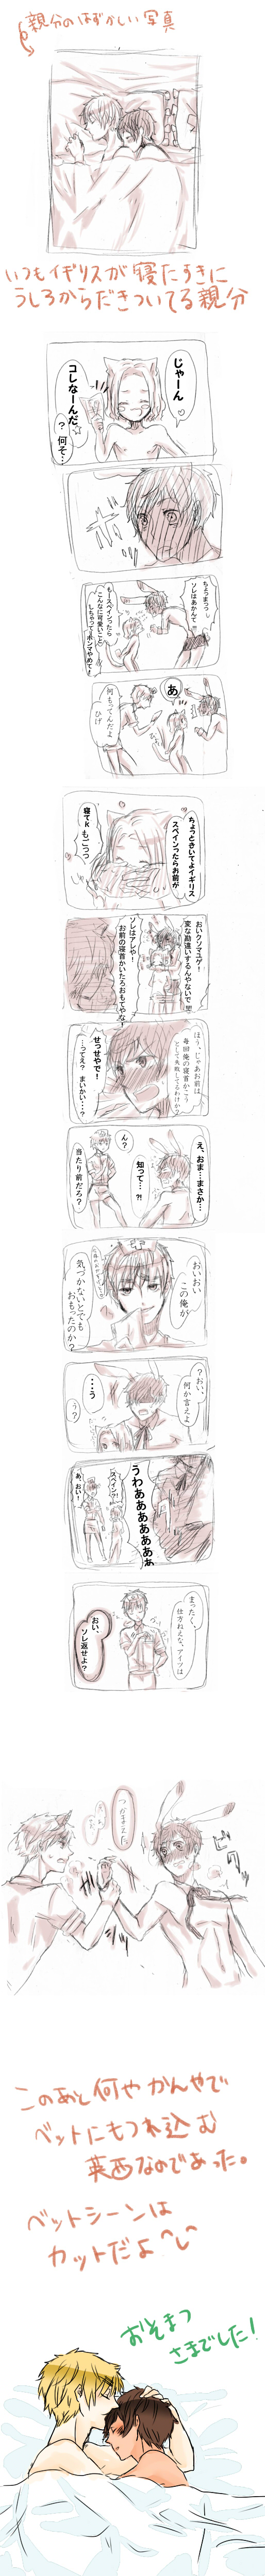 Tags: Anime, Axis Powers: Hetalia, Spain, United Kingdom, France, Mediterranean Countries, Allied Forces